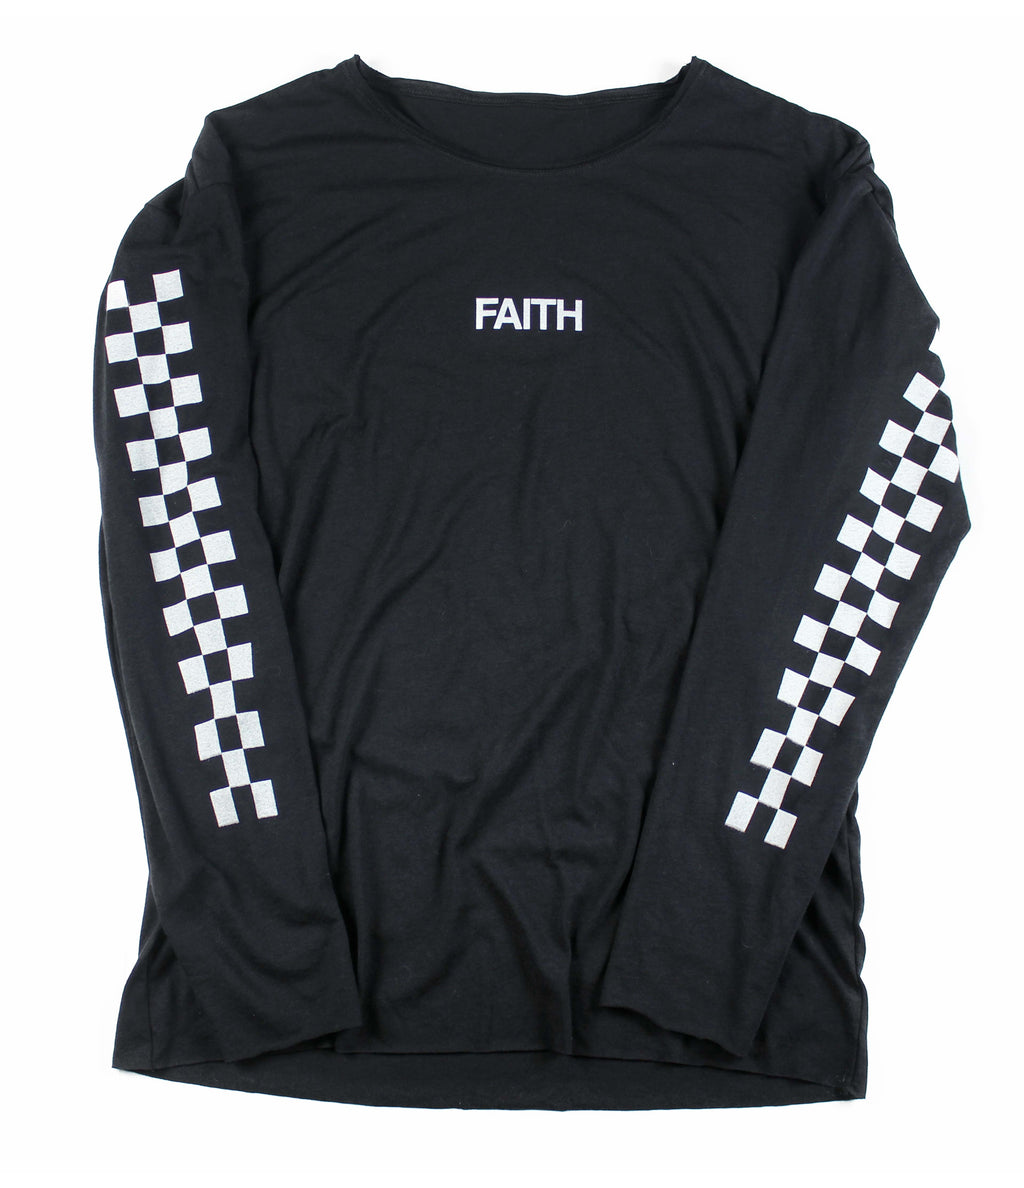 RACE OF FAITH BLACK RAW NECK LONG SLEEVE